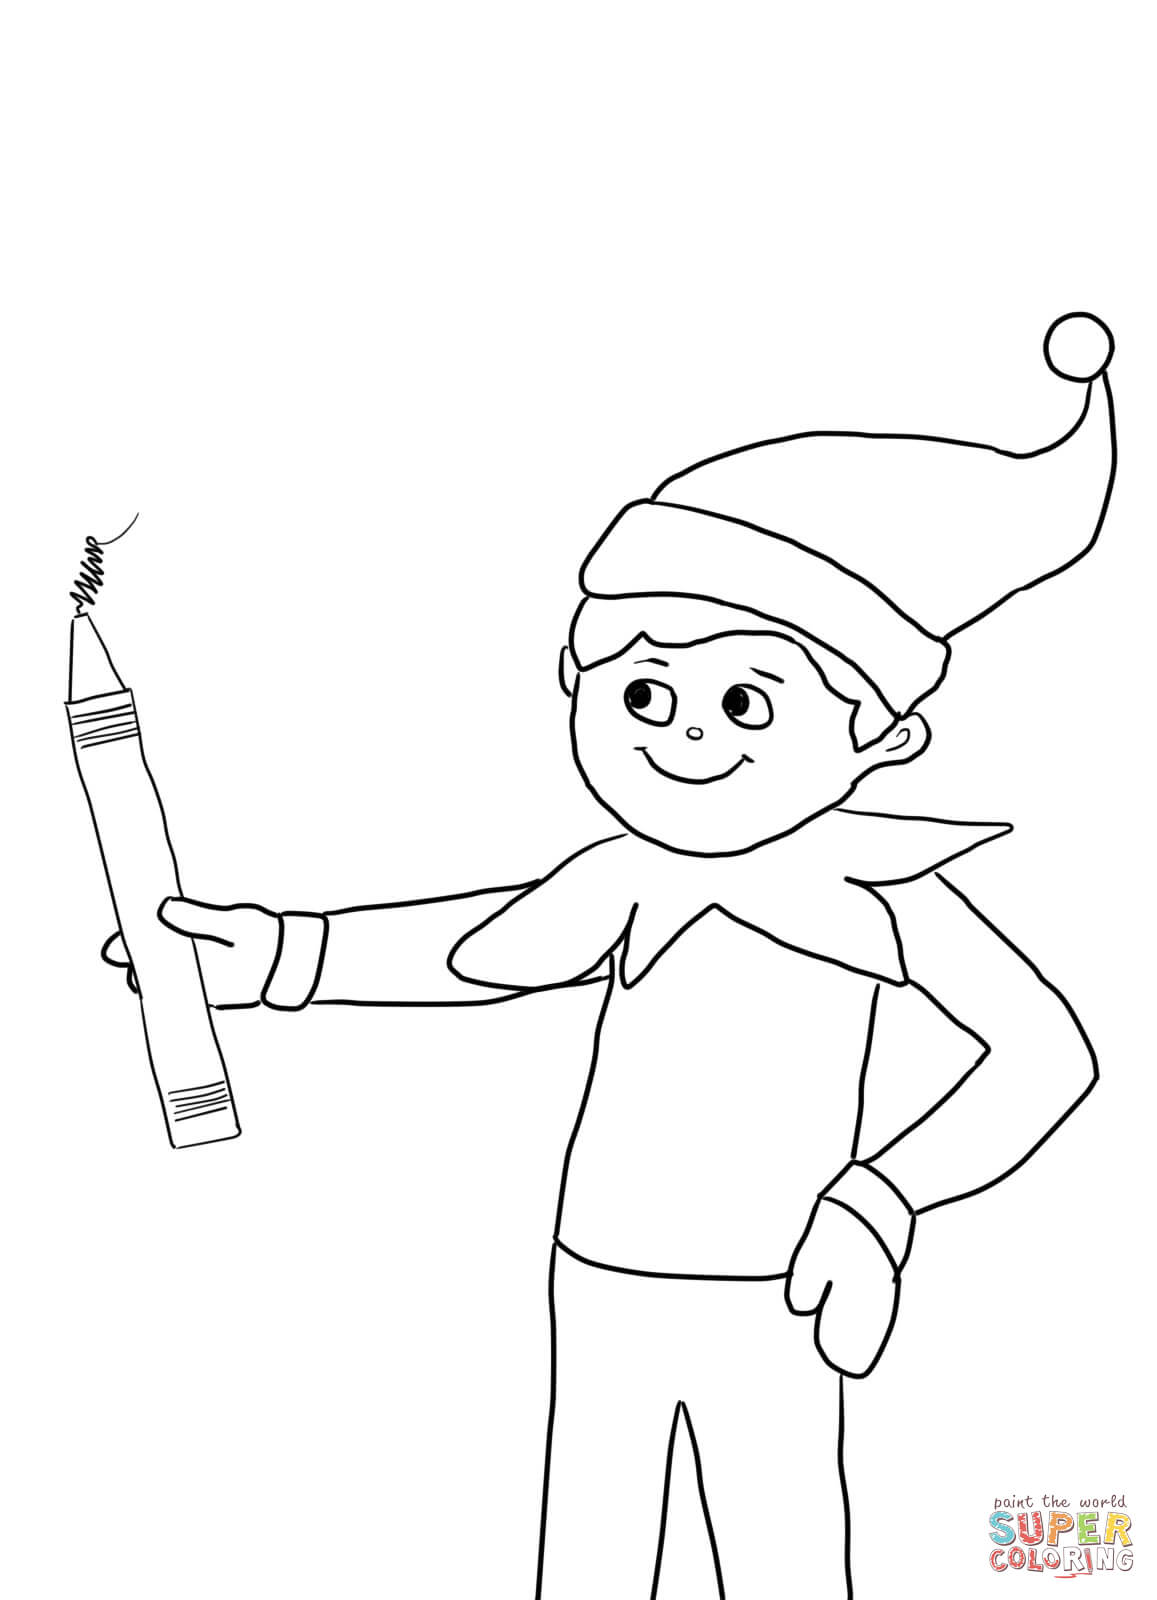 Elf On The Shelf Printable Coloring Pages Coloring Home On The Shelf Coloring Pages Printable